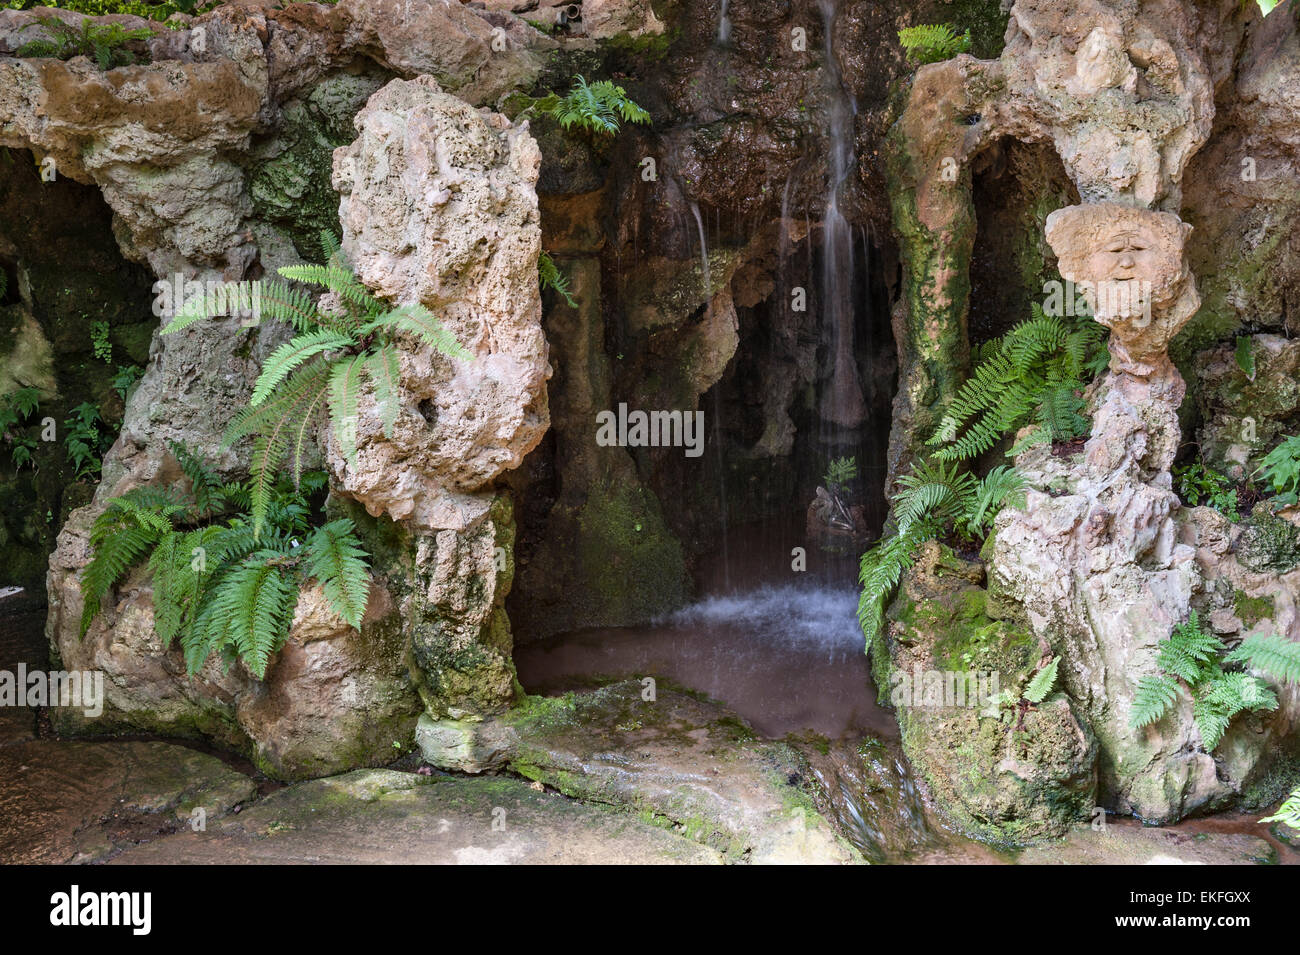 Dewstow Gardens and Grottoes, Caerwent, Wales, UK. A lost underground garden only rediscovered in 2000 - Stock Image